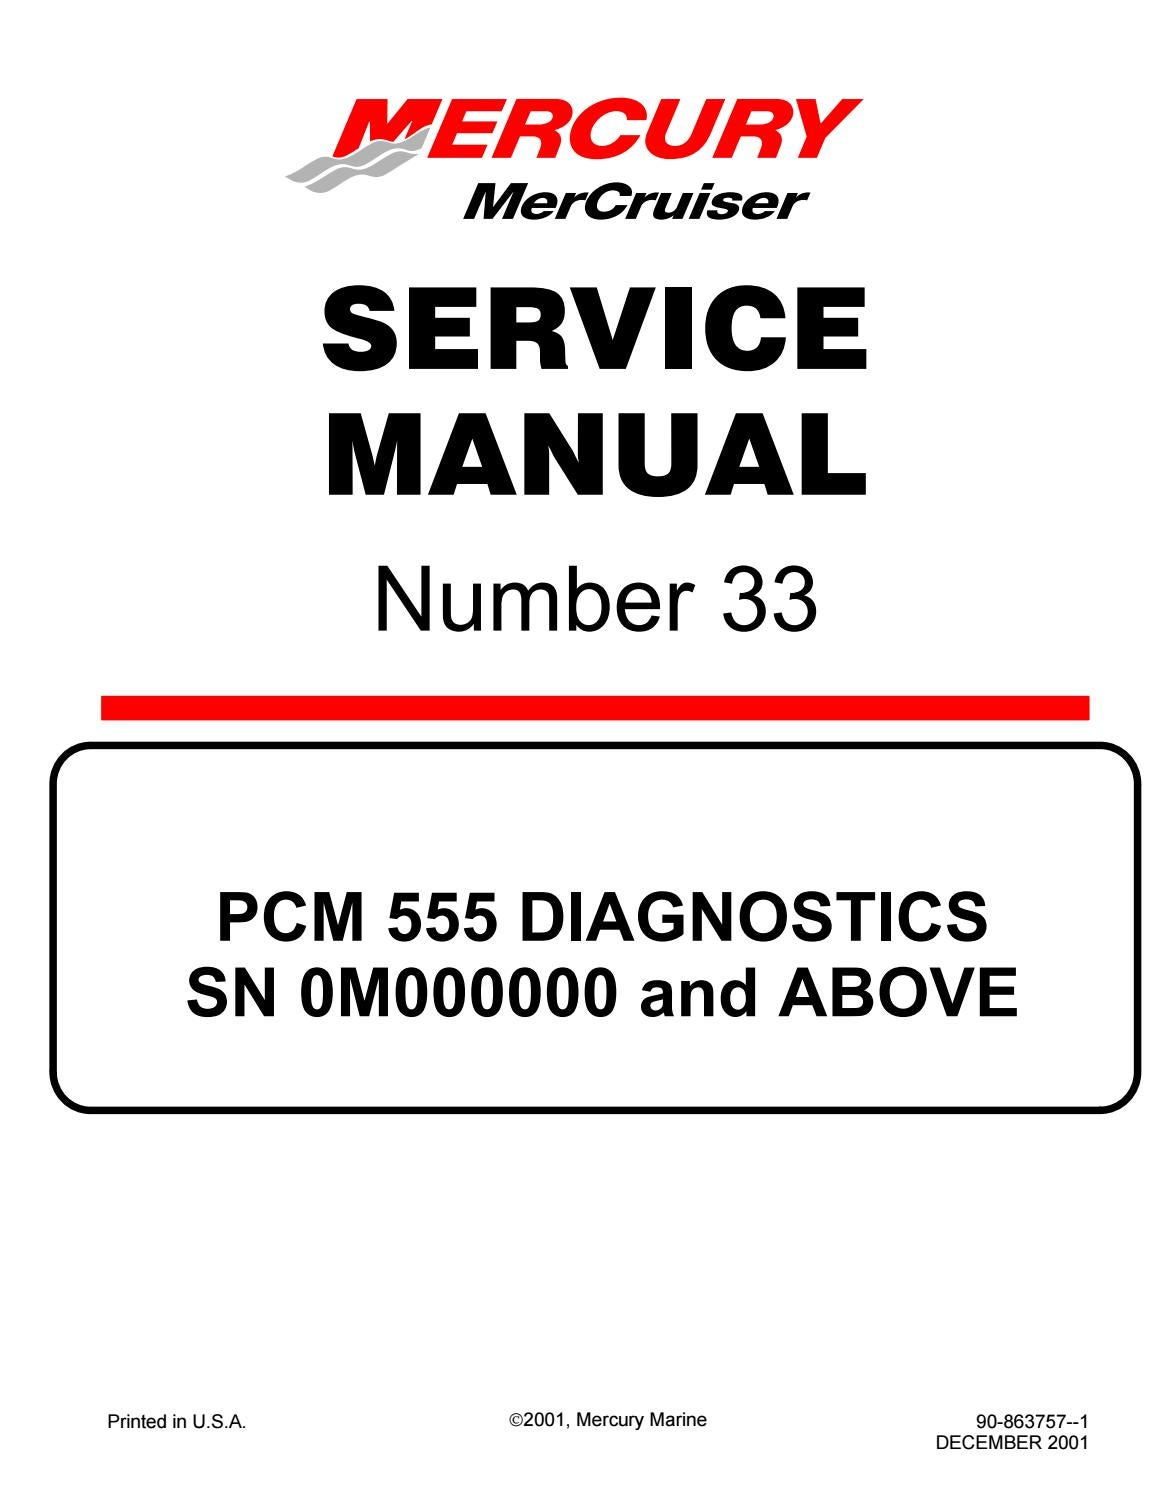 Mercury Mercruiser 8 1s Ho Diagnostics Service Repair Manual Sn0m000000 And Above By 1635716